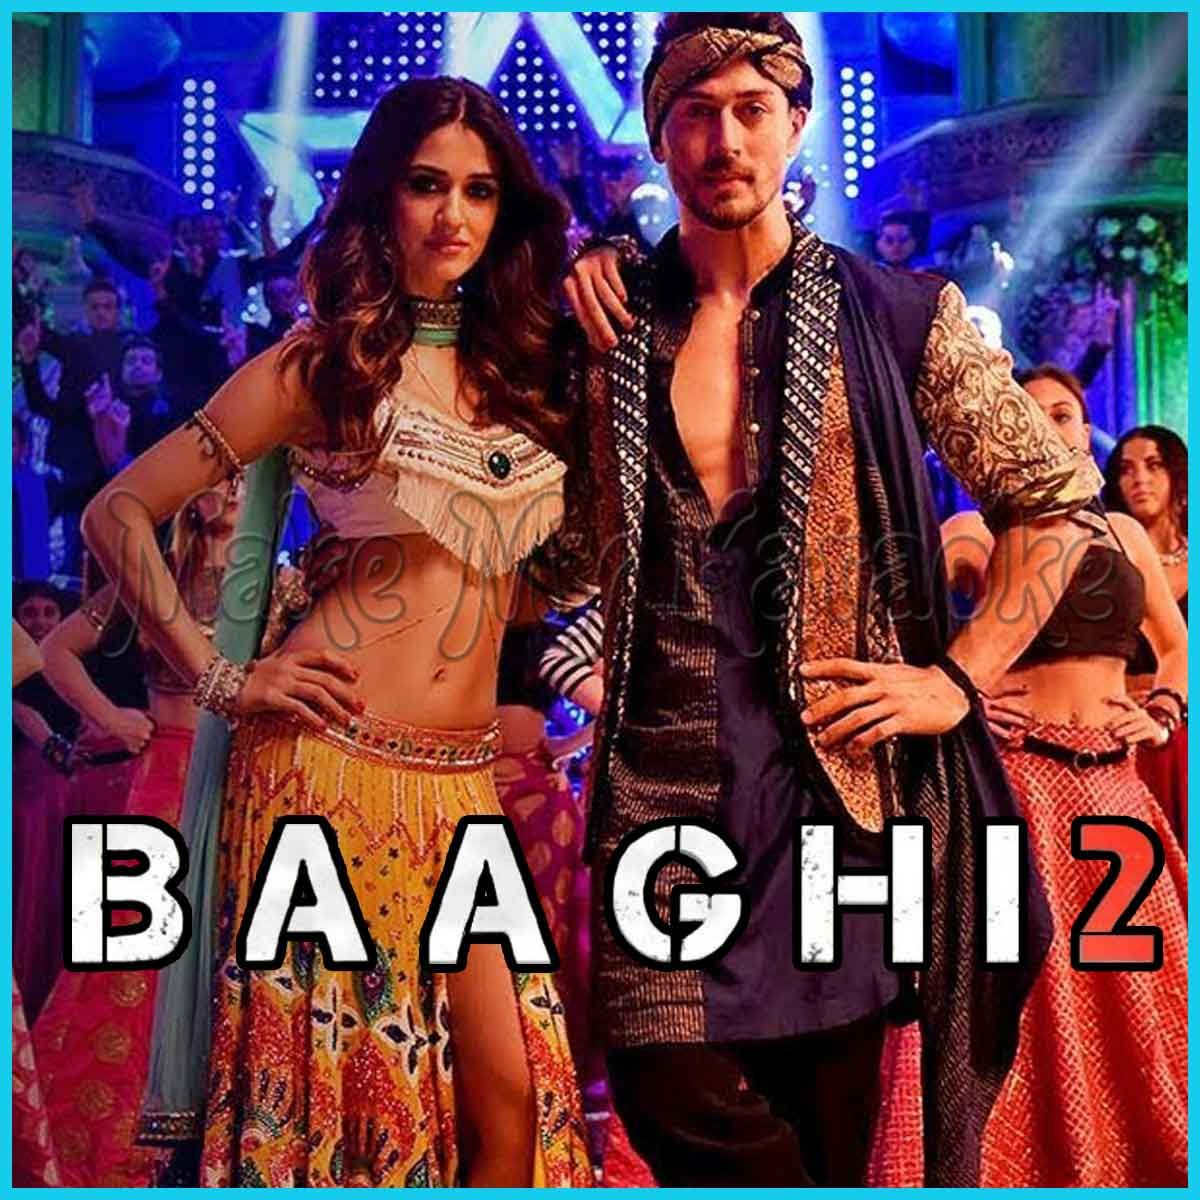 Mundiyan Baaghi 2 Mp3 And Video Karaoke Format In 2020 Mp3